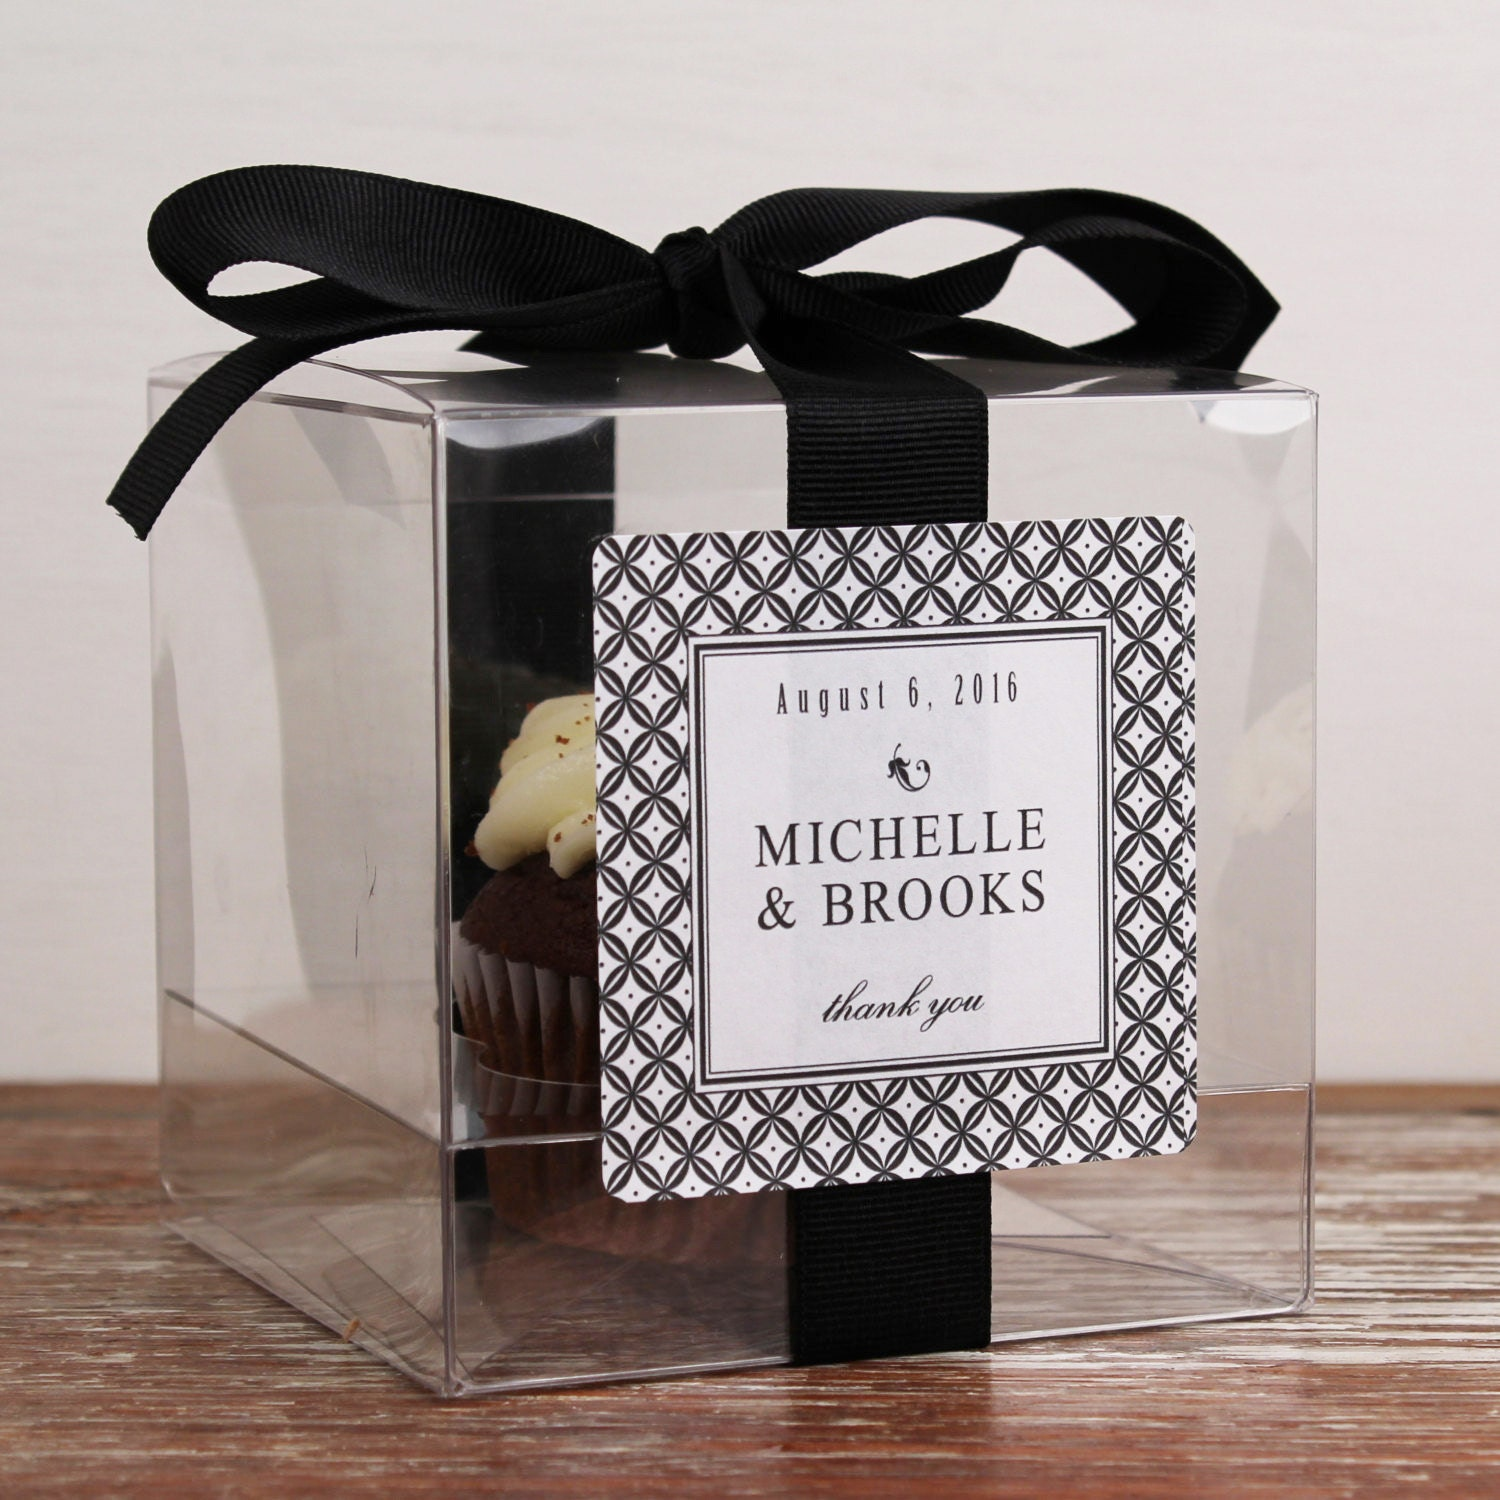 8 Personalized Cupcake Boxes Metro Design Any Color Etsy